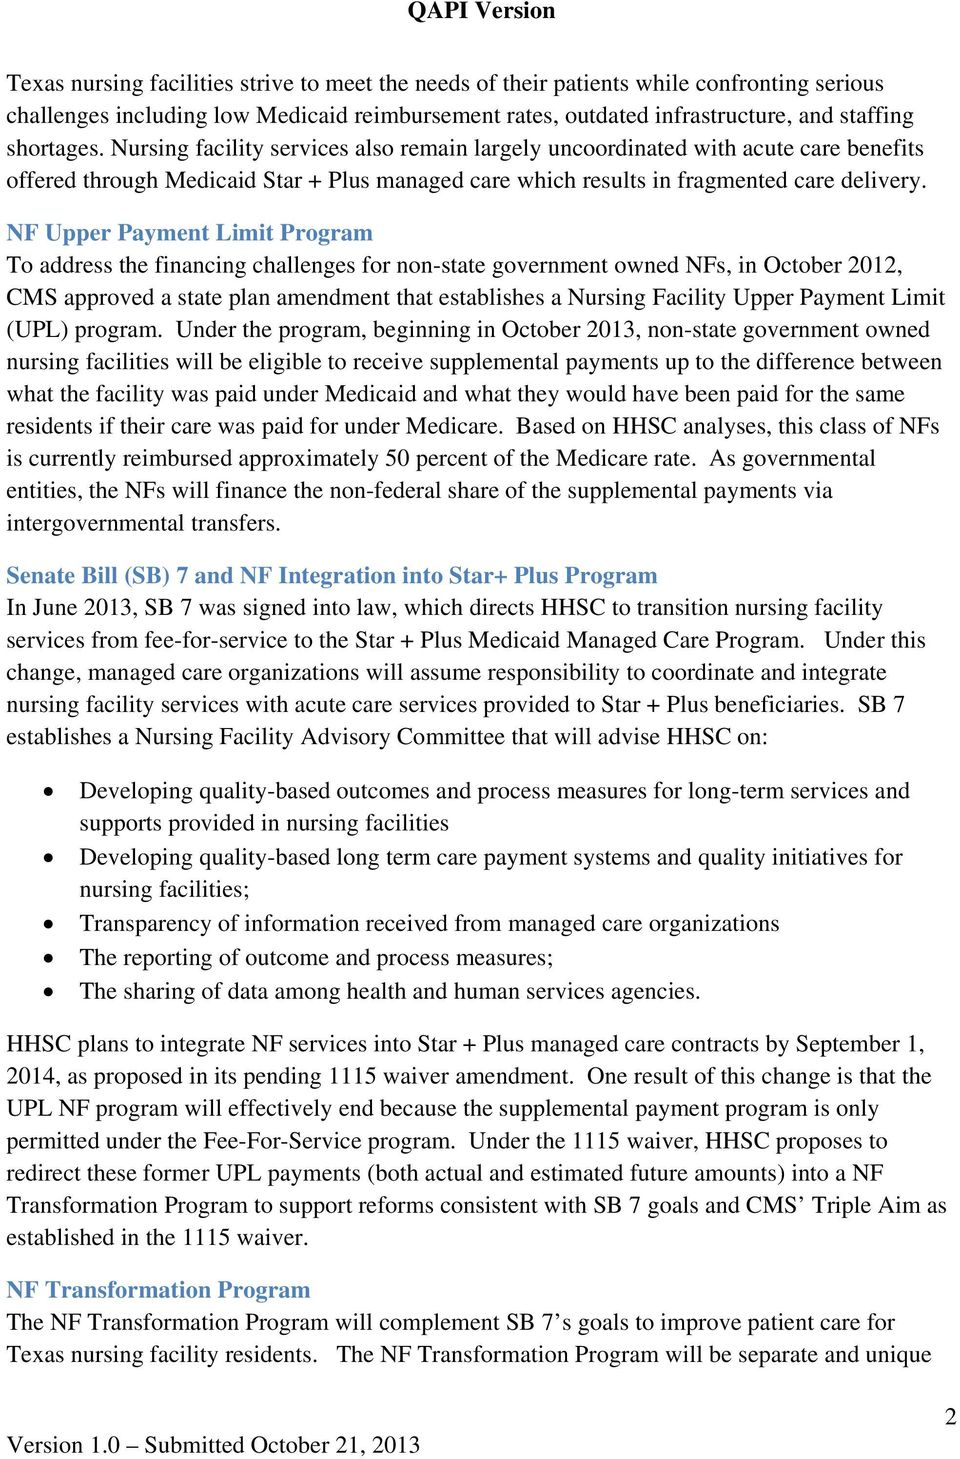 NF Upper Payment Limit Program To address the financing challenges for non-state government owned NFs, in October 2012, CMS approved a state plan amendment that establishes a Nursing Facility Upper